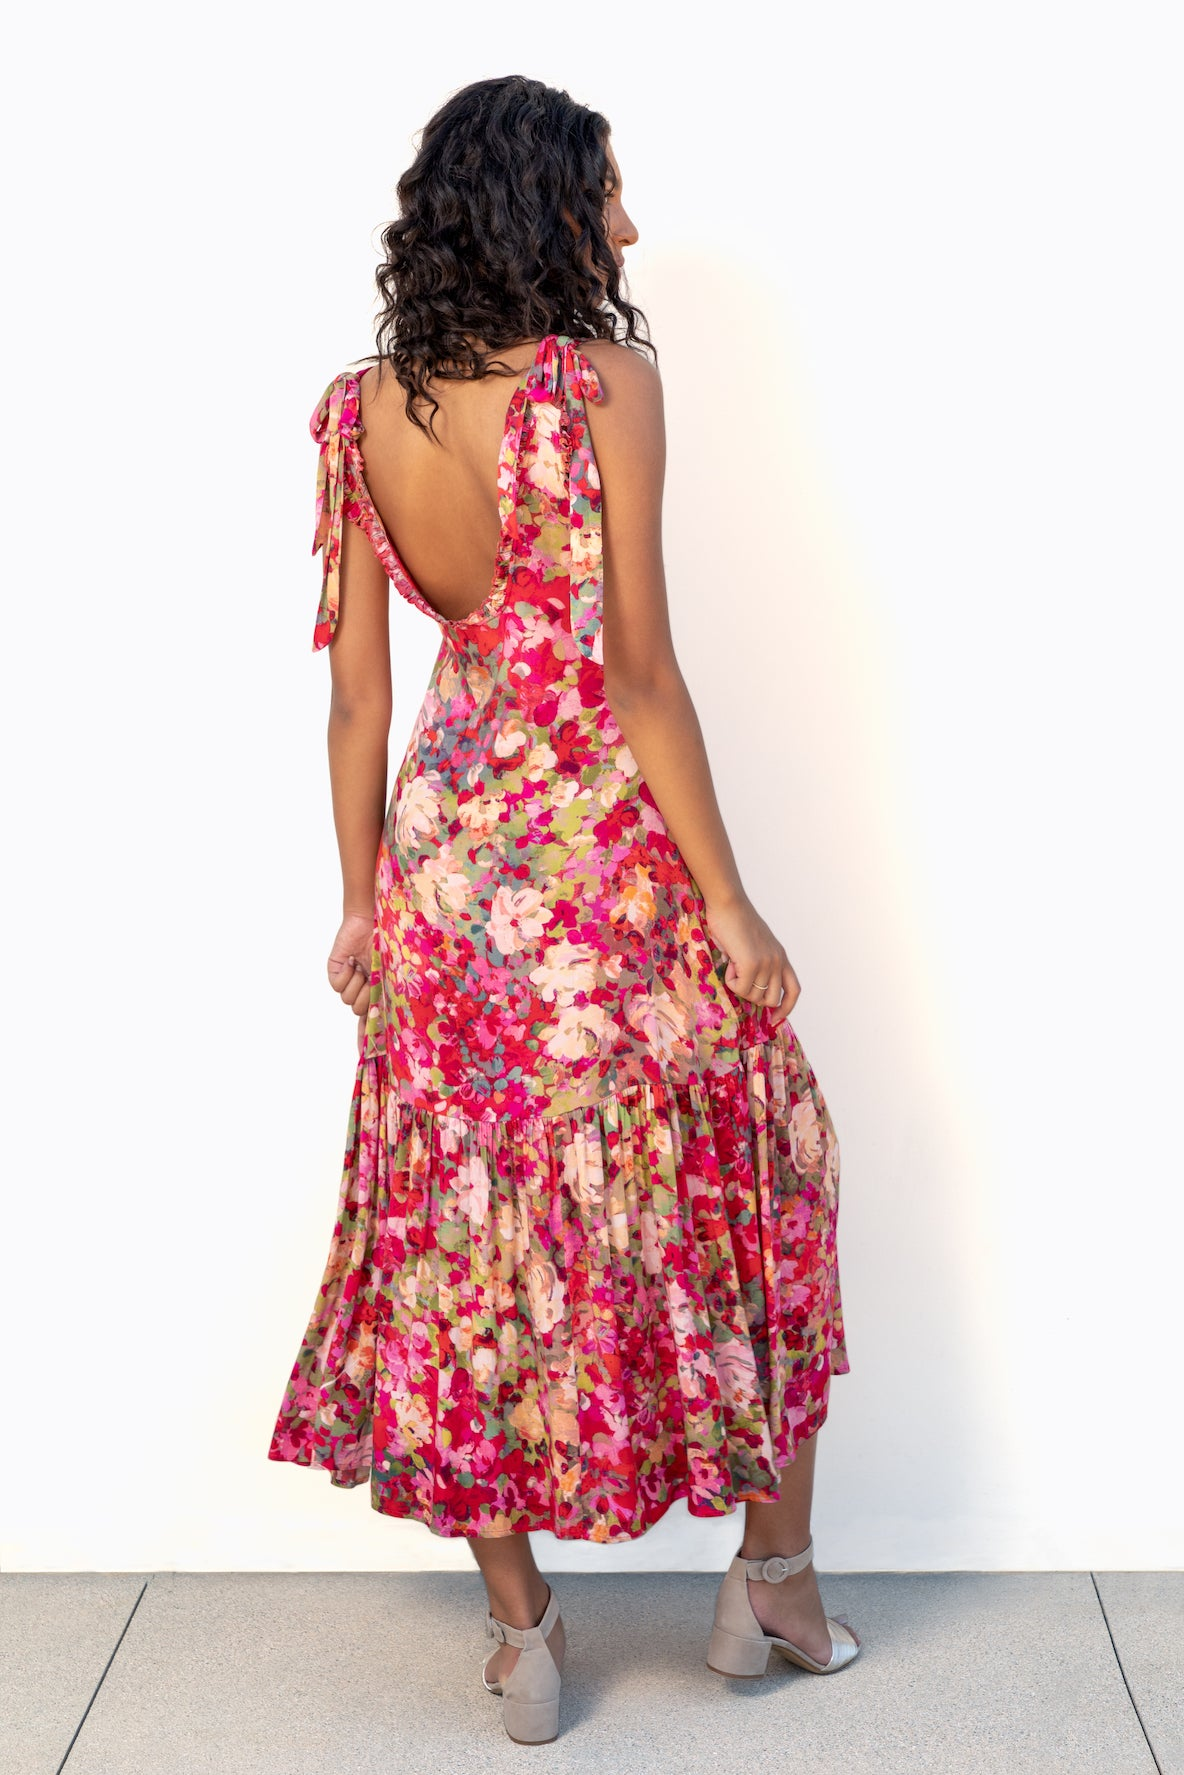 Back of model's full body wearing Finchley Camino's maxi length red floral dress with large ruffle hem, straps tied in bows, and a low back with a ruffle trim.